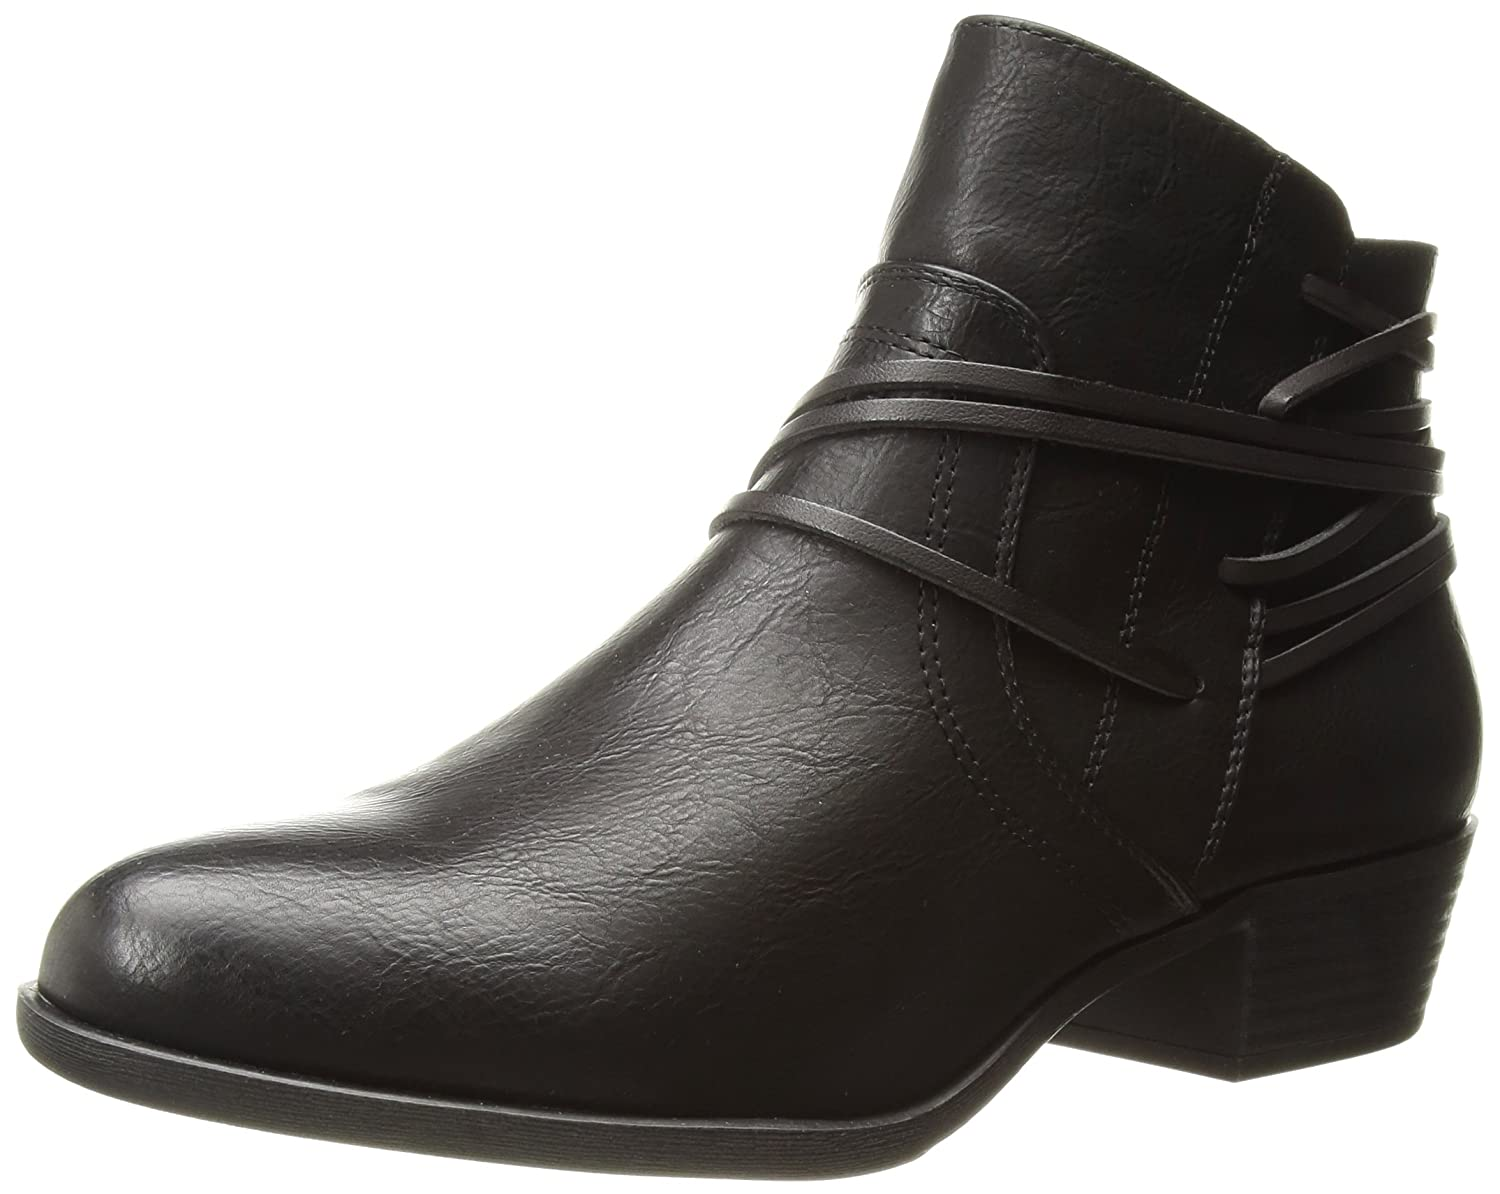 Madden Girl Women's Become Ankle Boot B074WPZ1JW 7.5 B(M) US|Black Paris